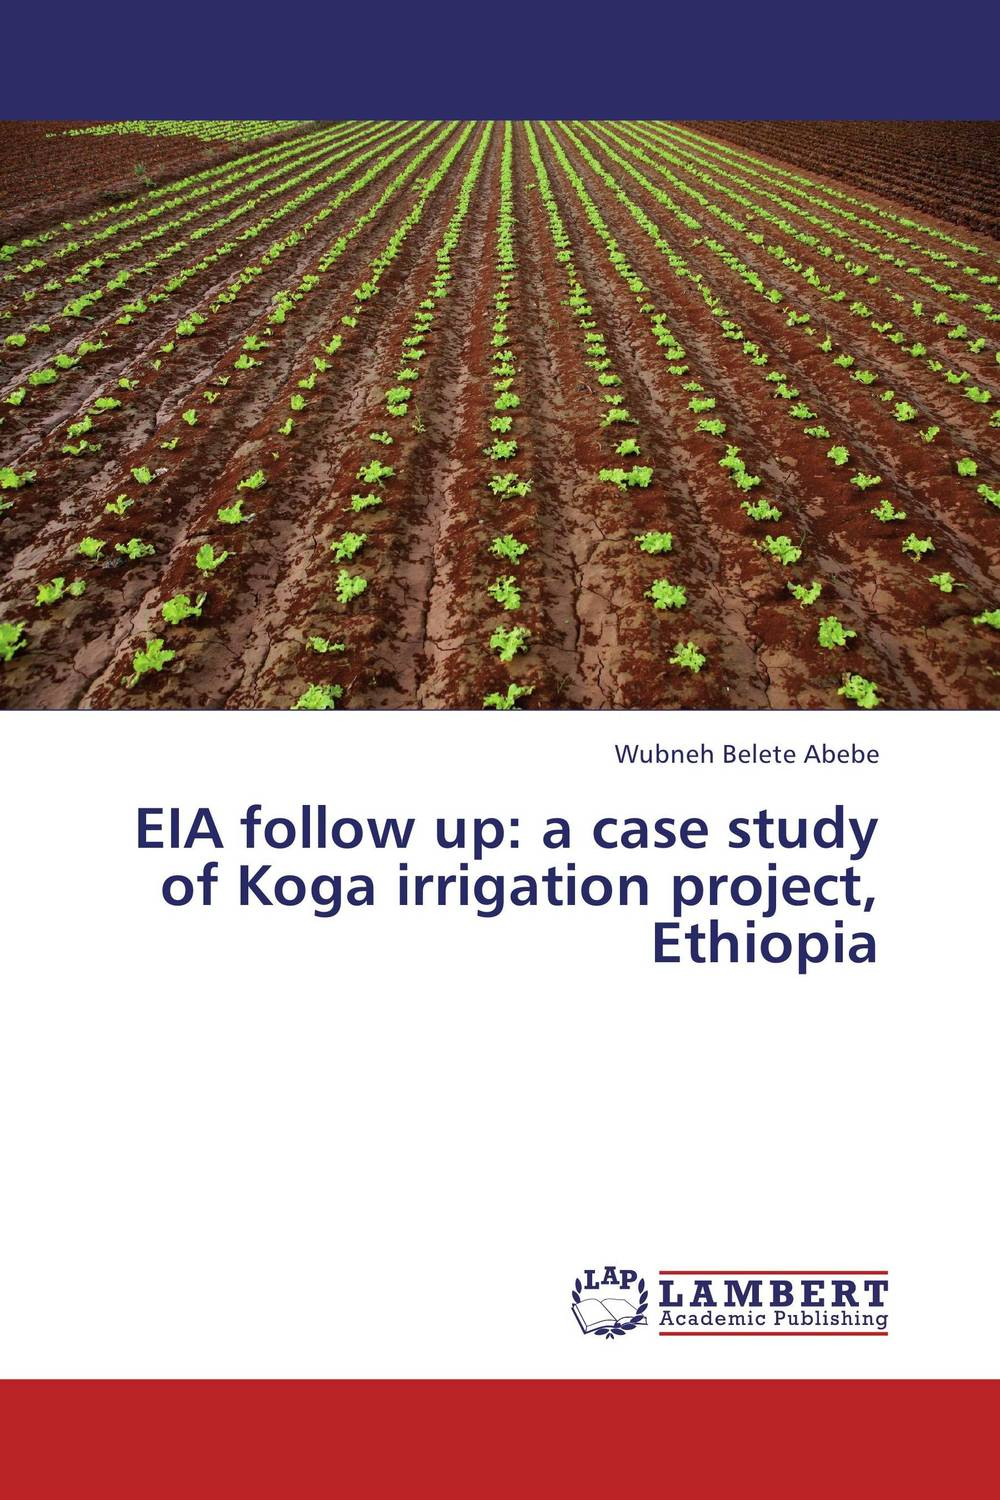 EIA follow up: a case study of Koga irrigation project, Ethiopia